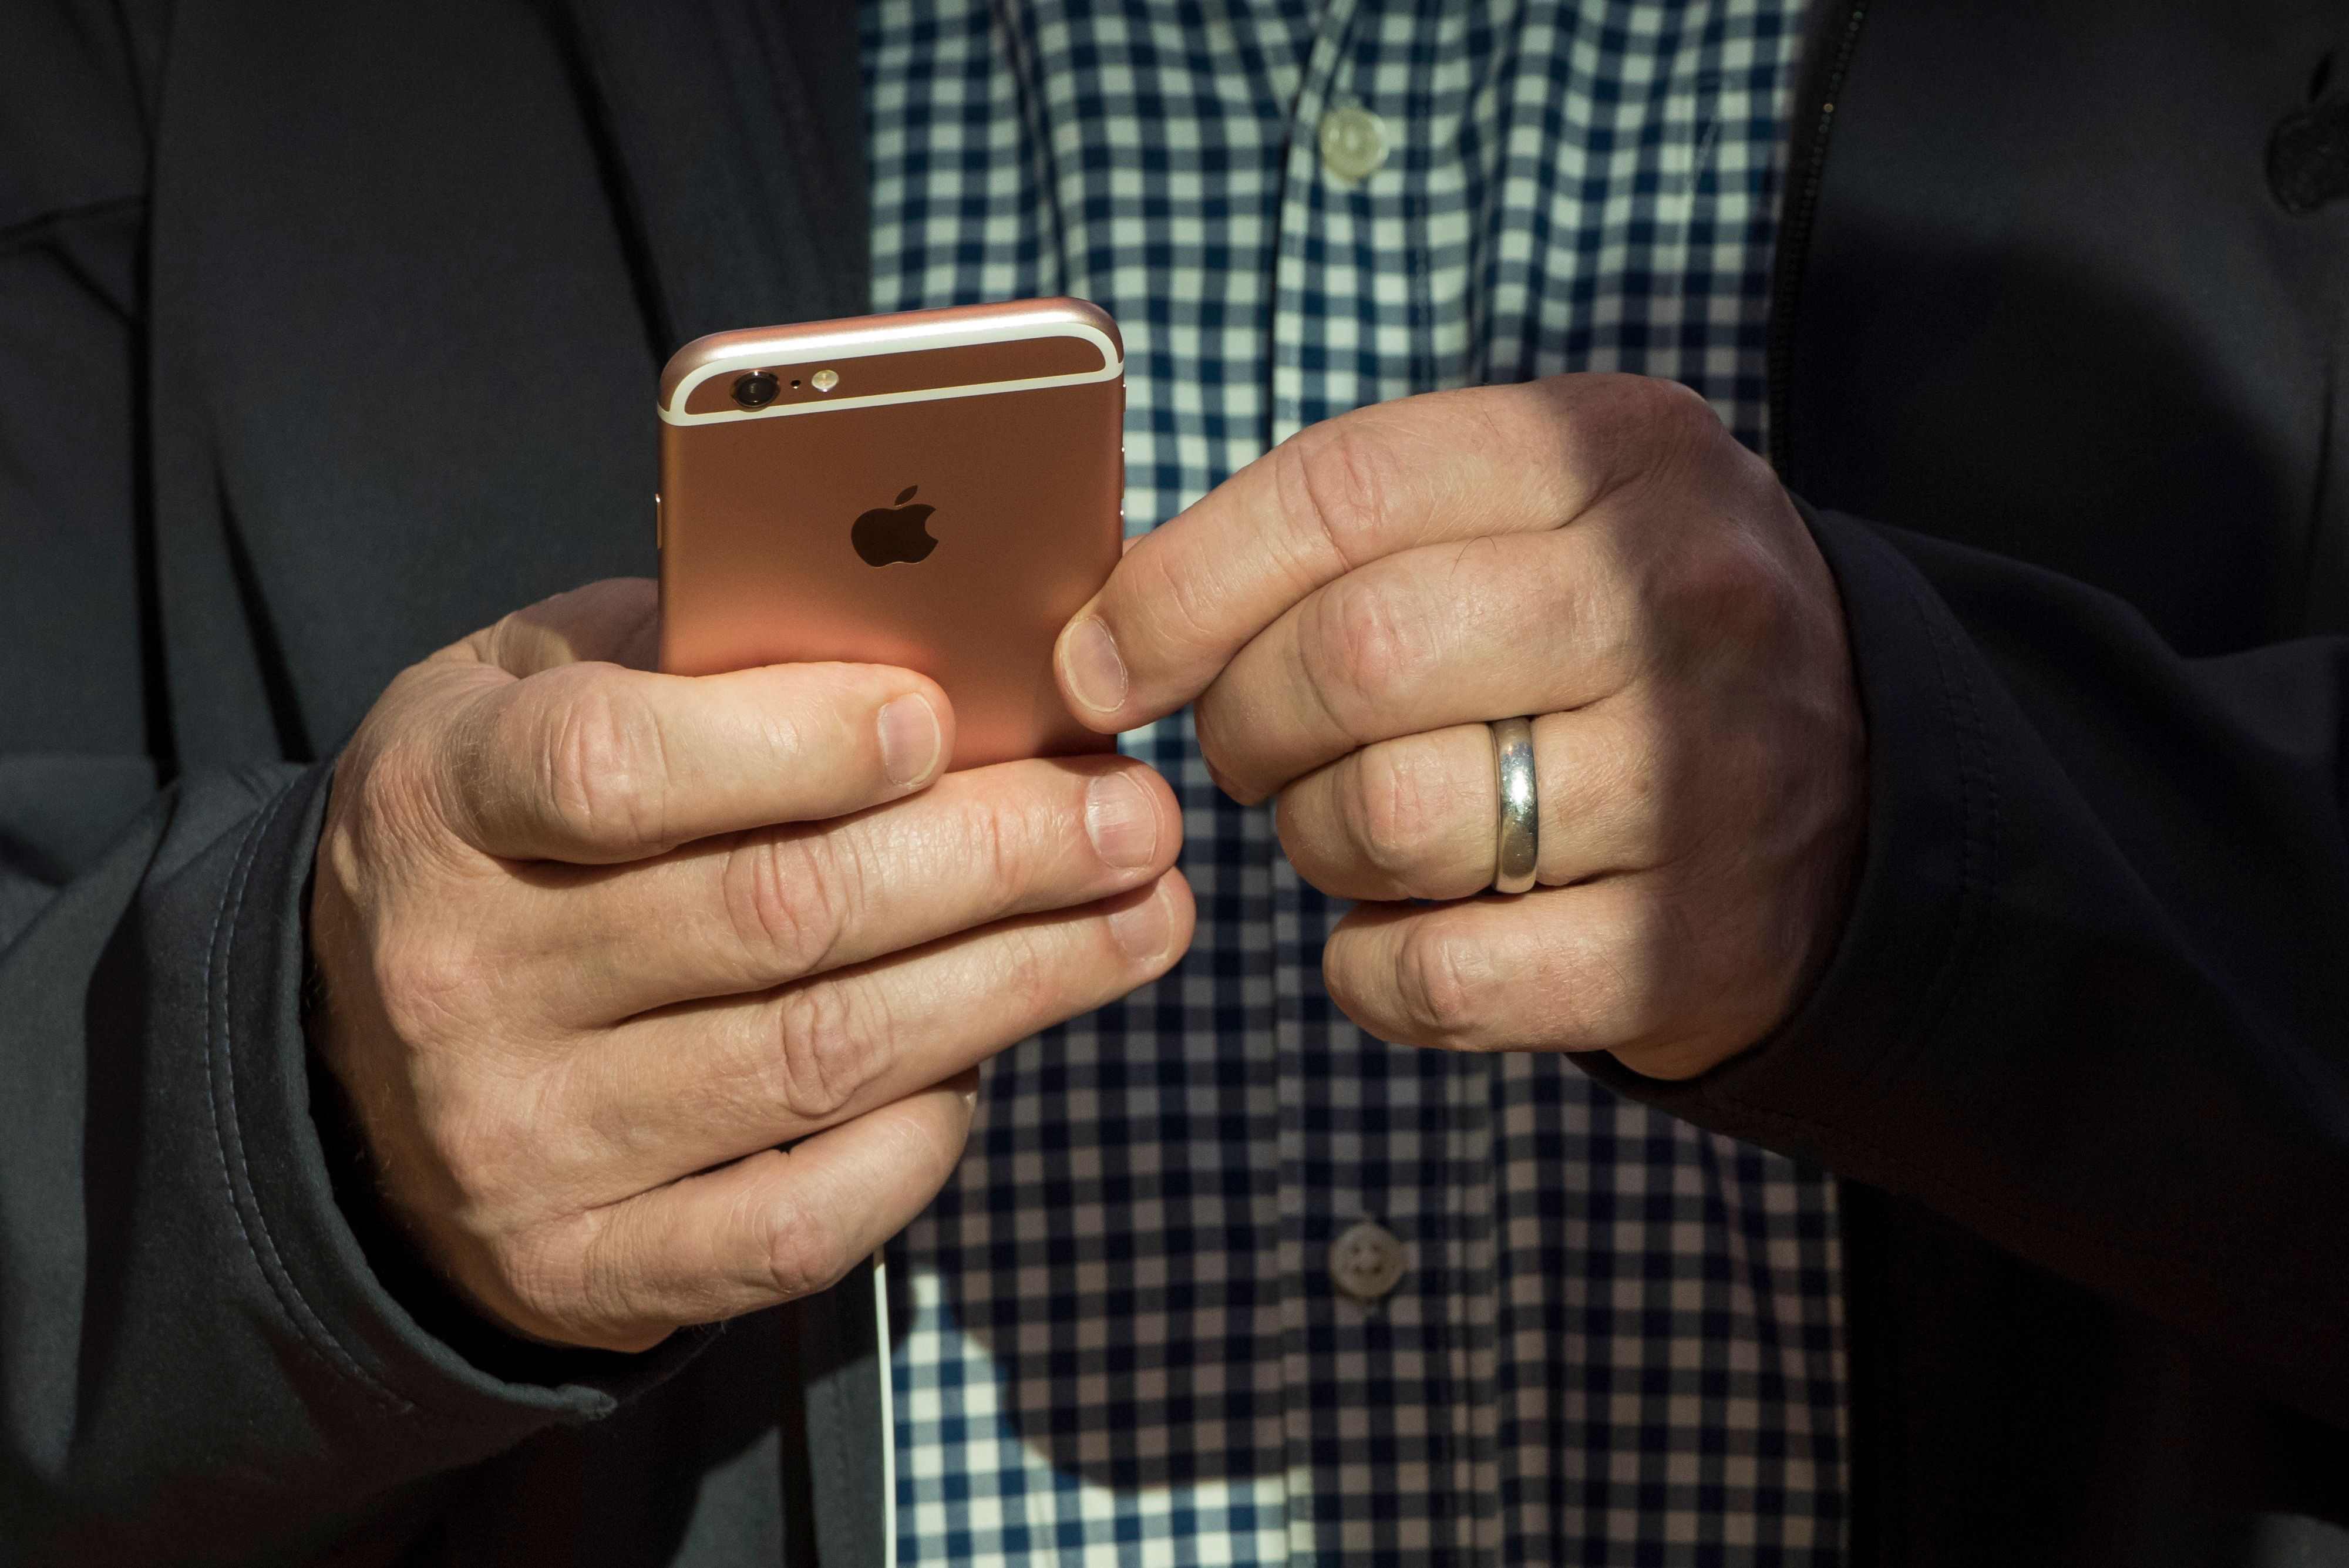 A customer looks at a Apple Inc. iPhone 6s at an Apple store in Palo Alto, California, U.S., on Friday, Sept. 25, 2015. From Sydney to New York, some of the Apple faithful waited in lines for more than two weeks to be among the first to receive the new iPhone 6s and 6s Plus. Photographer: David Paul Morris/Bloomberg via Getty Images